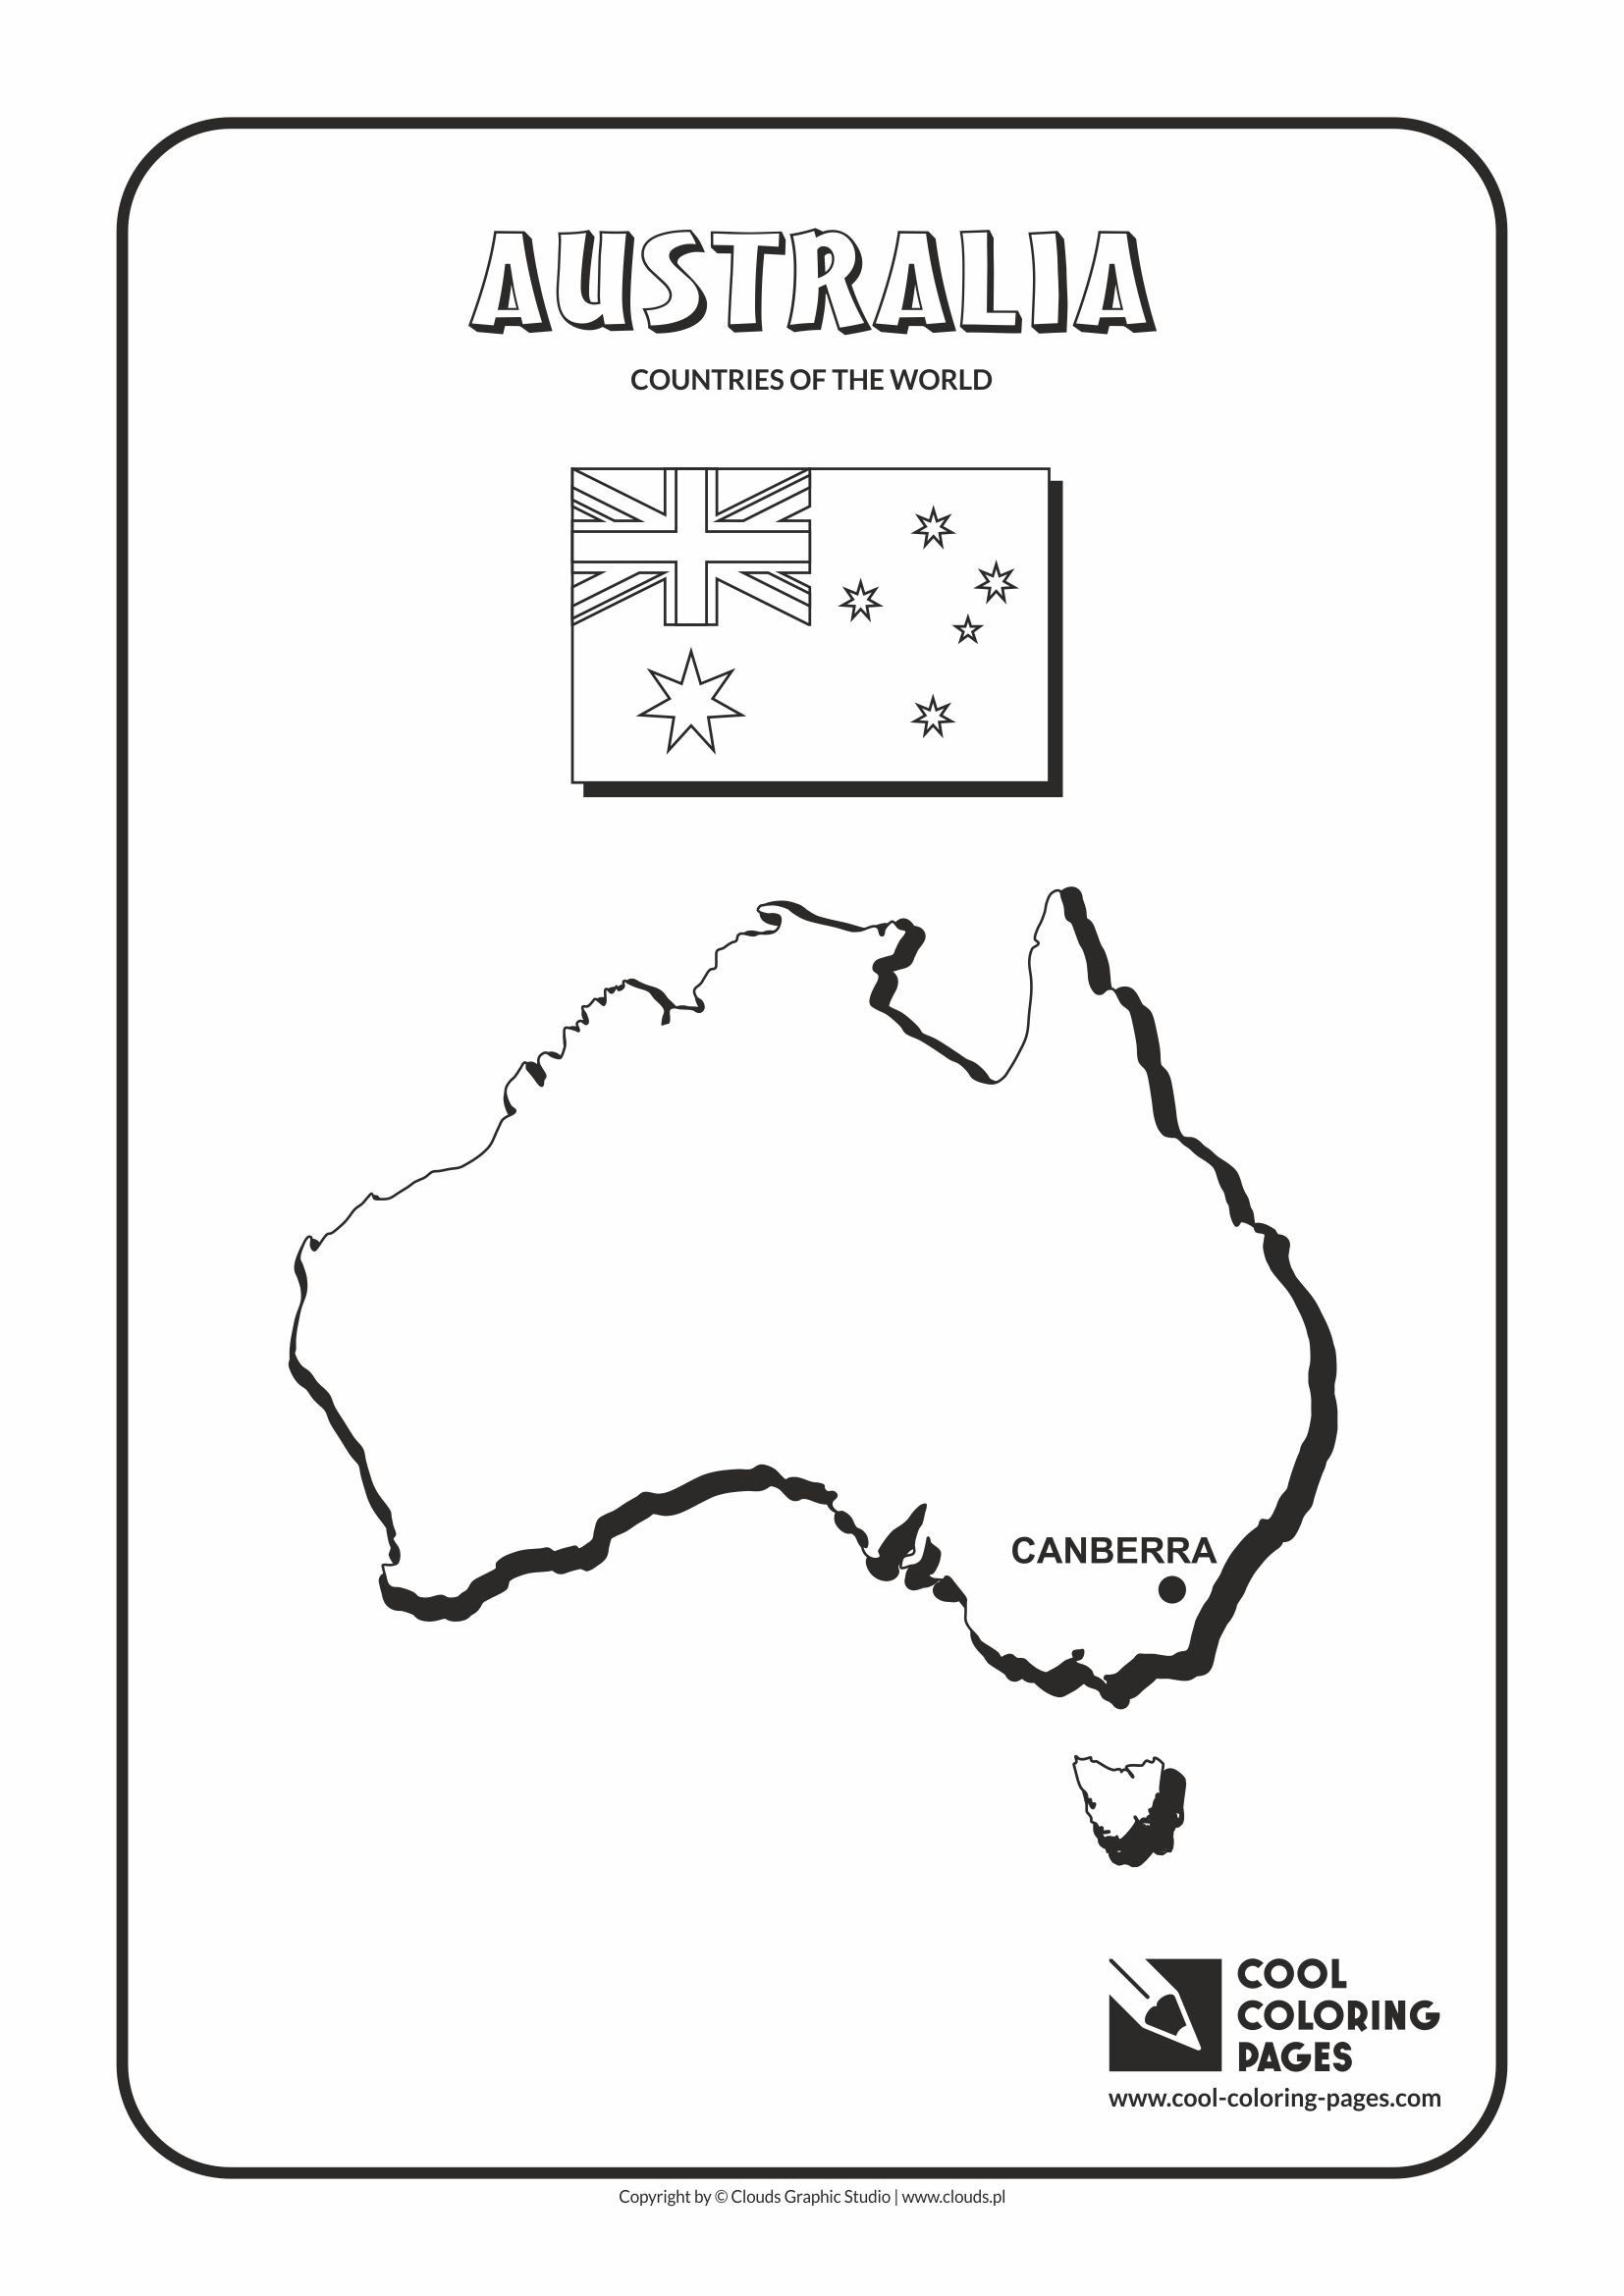 australia u2013 countries of the world cool coloring pages